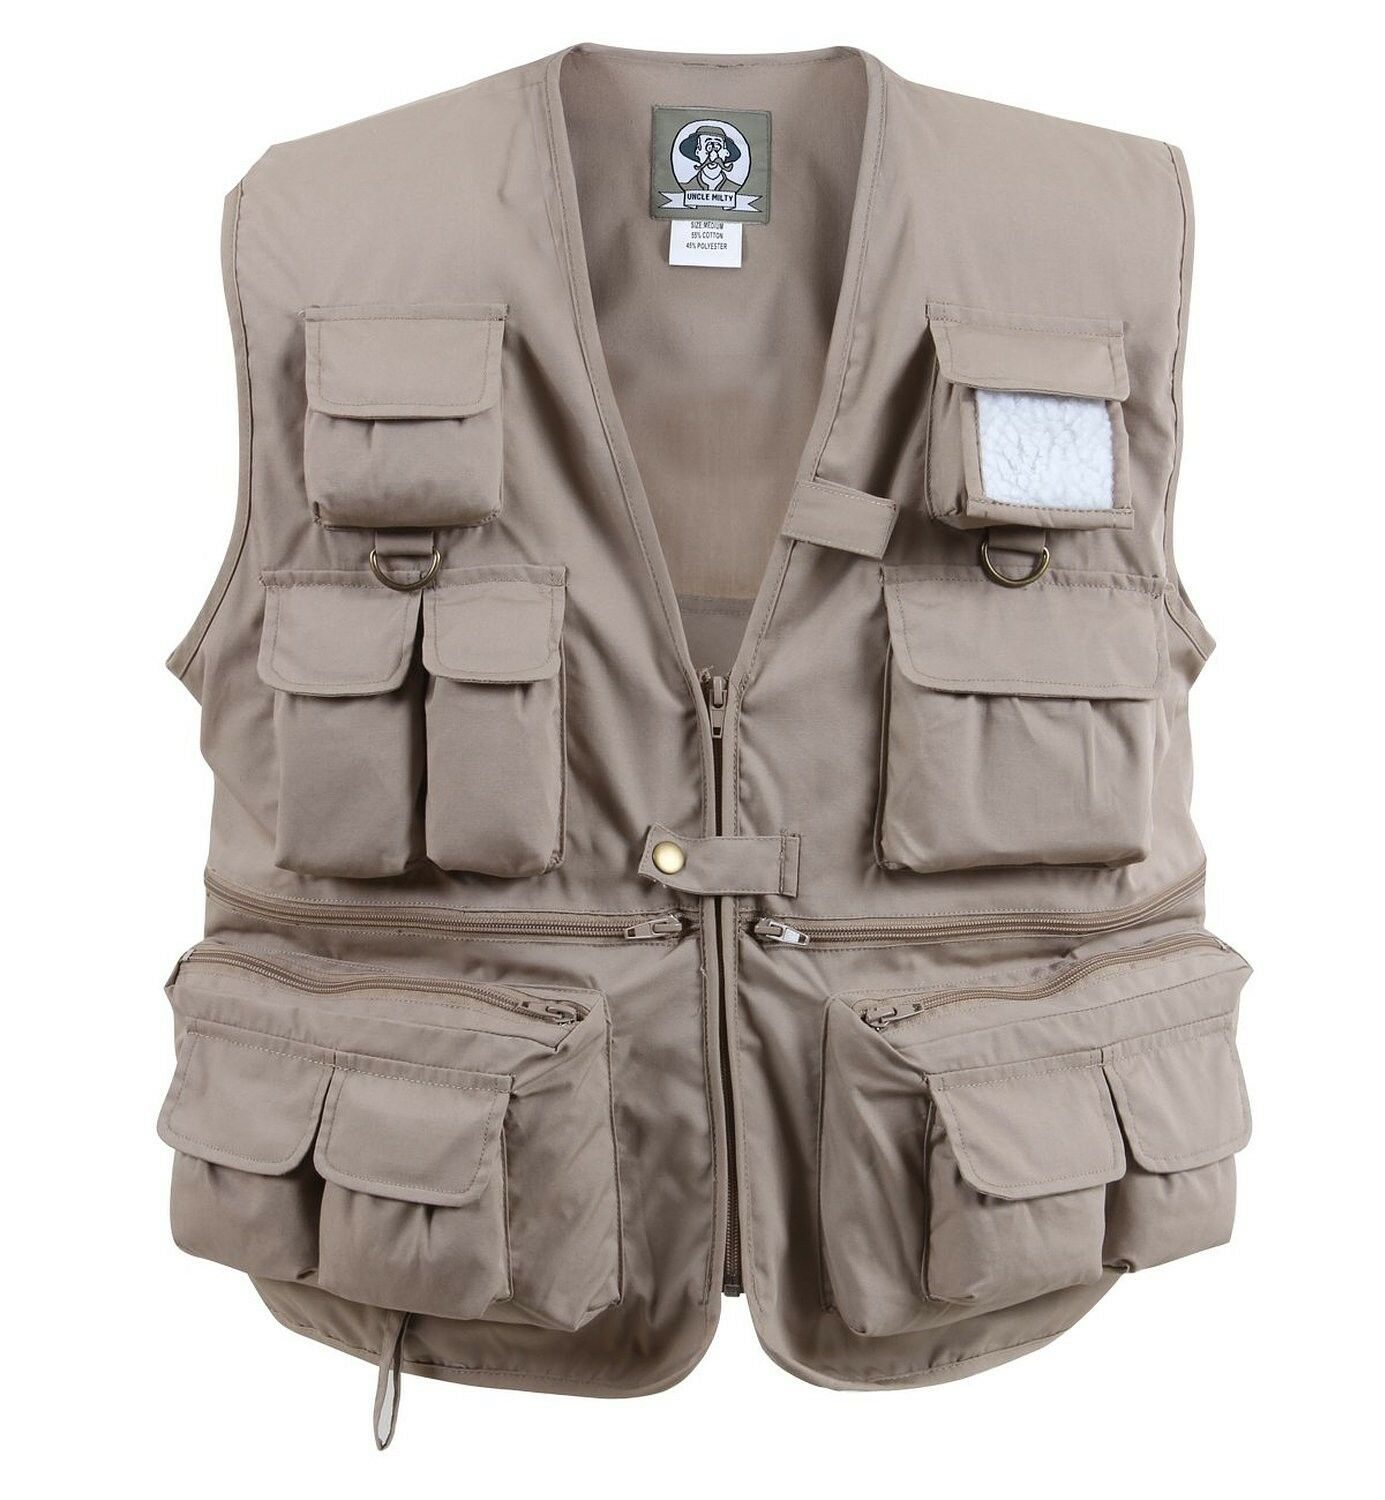 redhco 7546 Uncle Milty Khaki Travel Vest